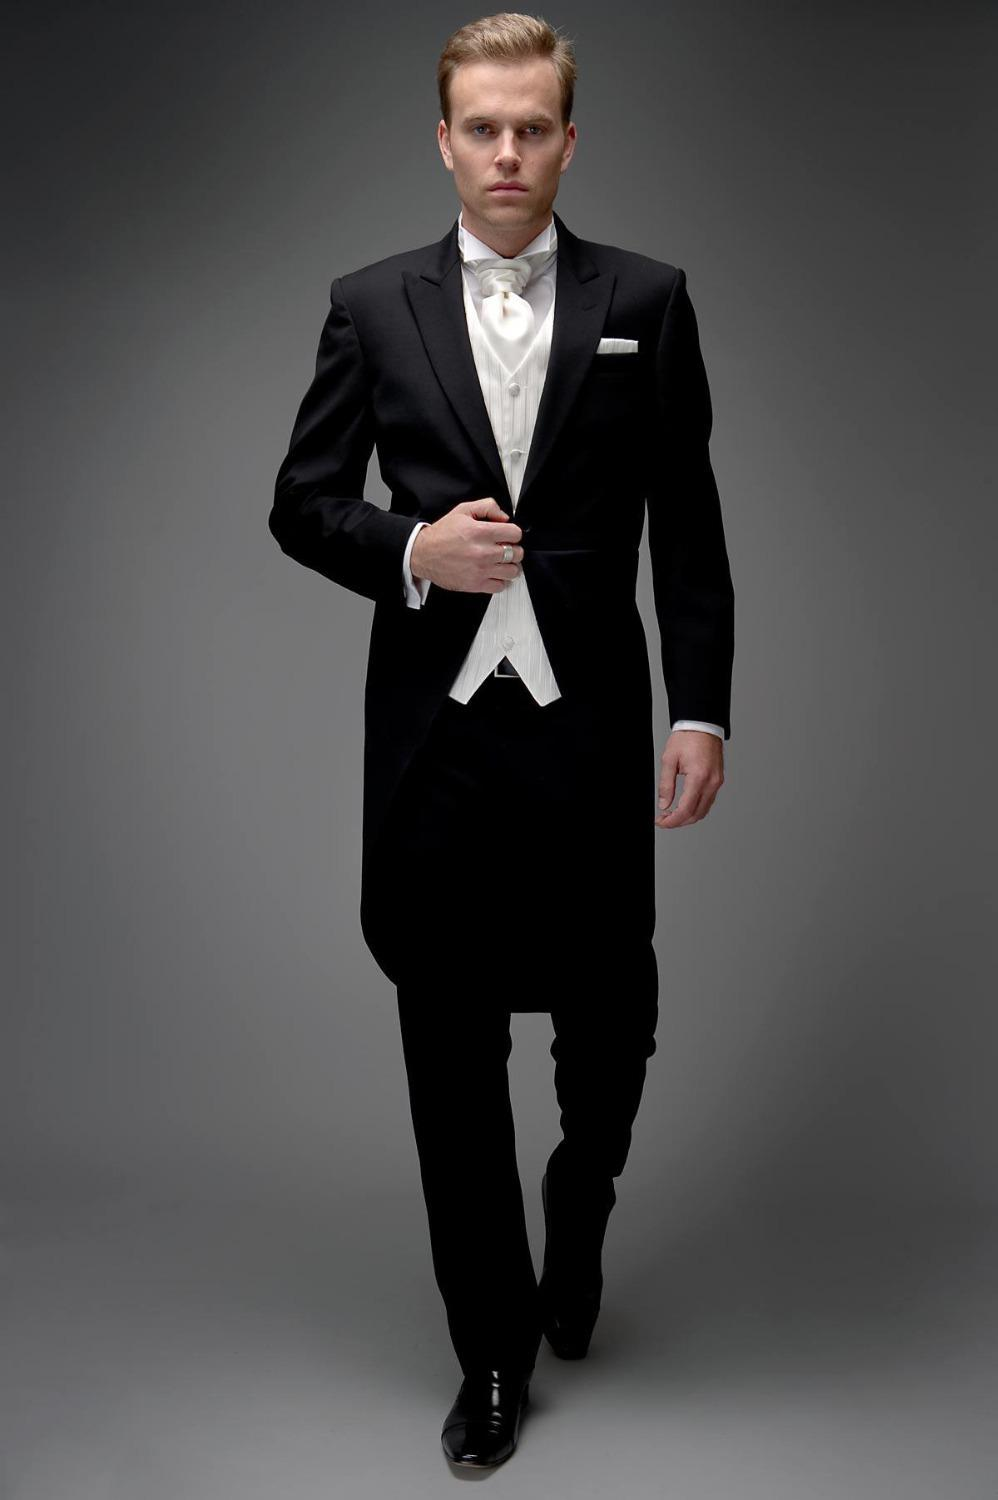 Fashion Men Suits Brand New Black Tailcoat Groom Tuxedos Wedding Dress Bridegroom Suit Best Man